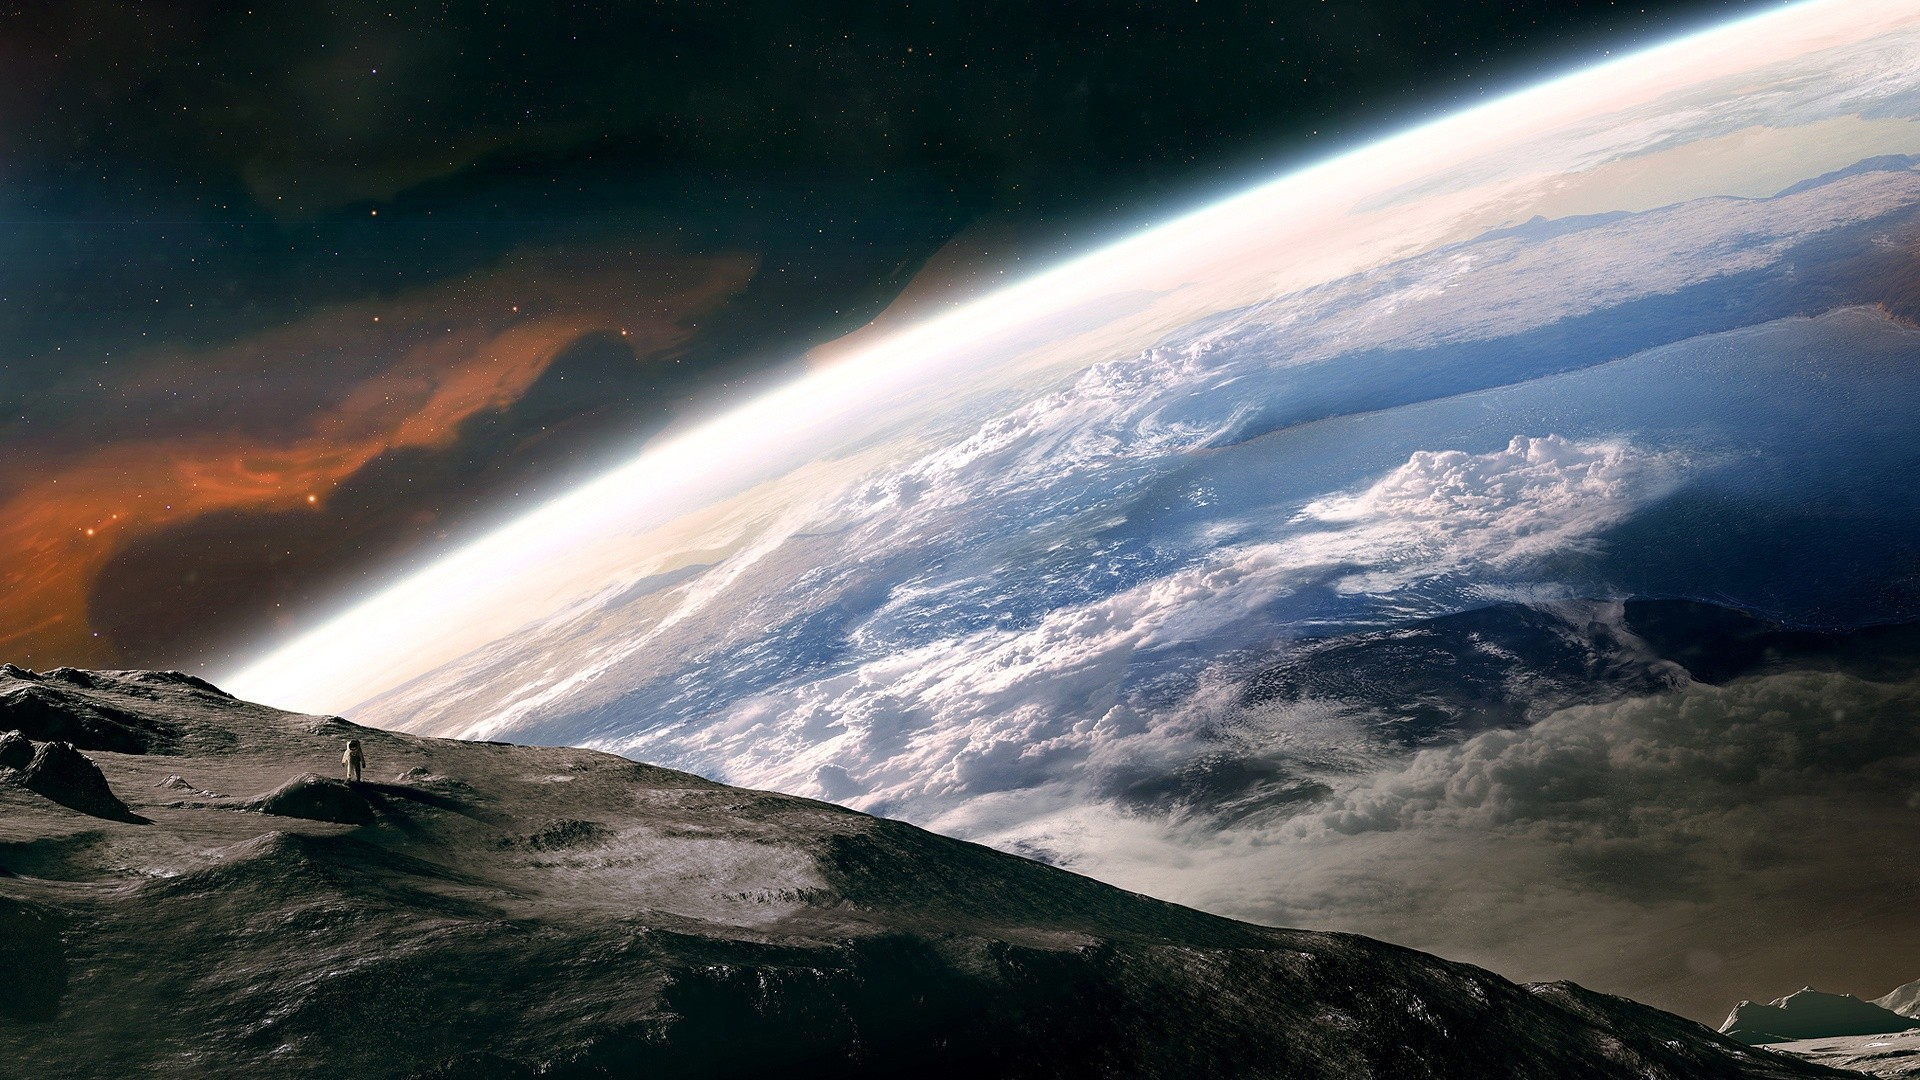 Outer Space Wallpaper 1920x1080 Outer, Space, Earth, Astronauts ...